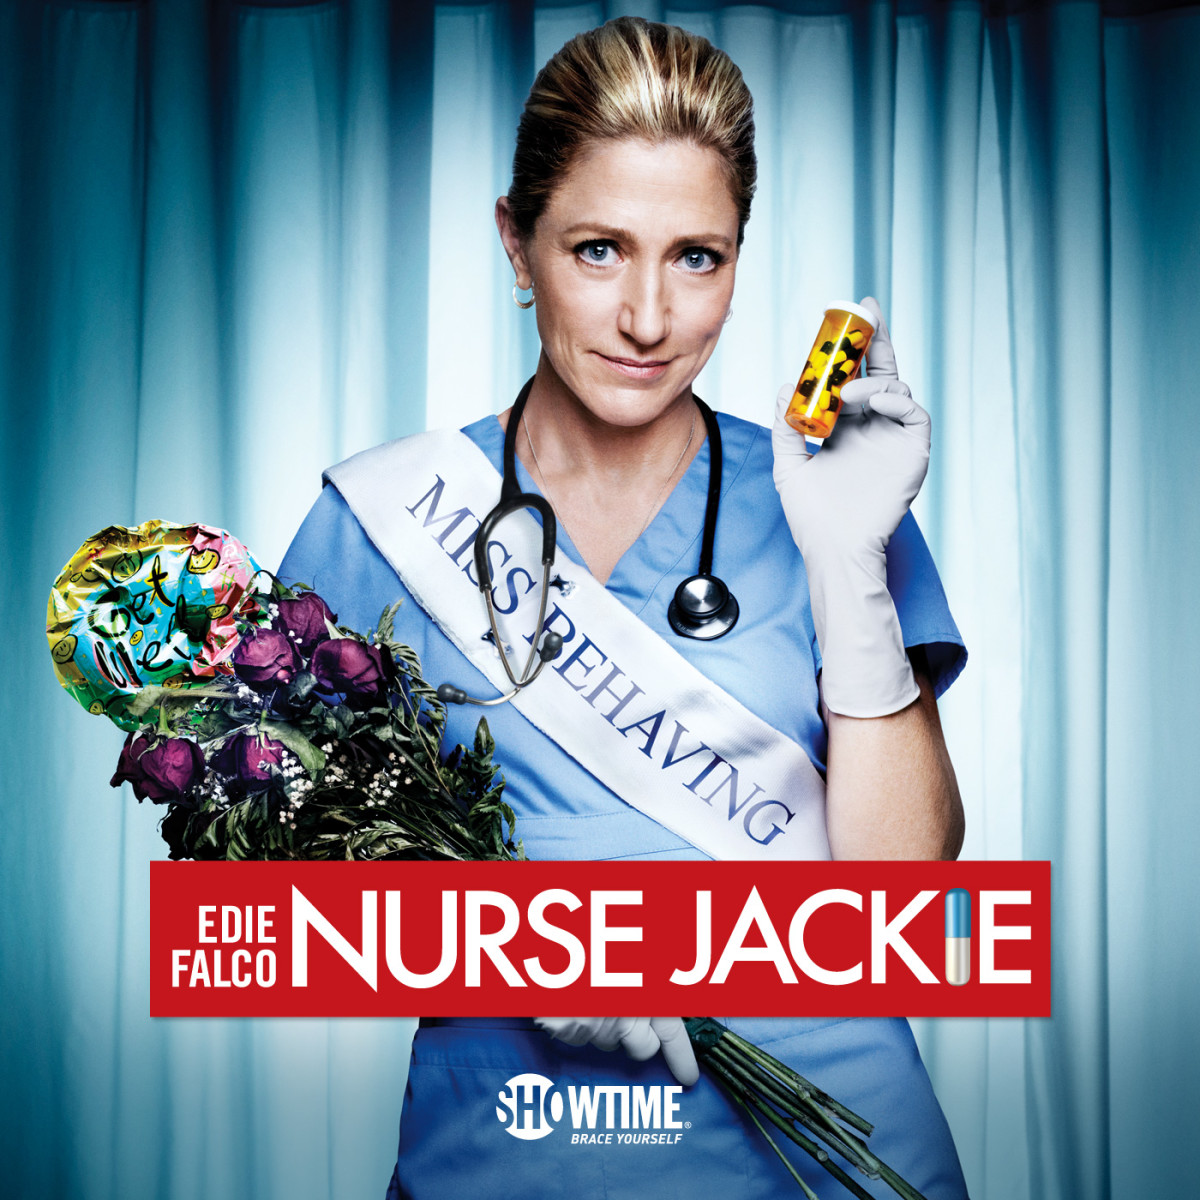 Nurse Jackie stars Edie Falco as an emergency room nurse who is addicted to drugs.